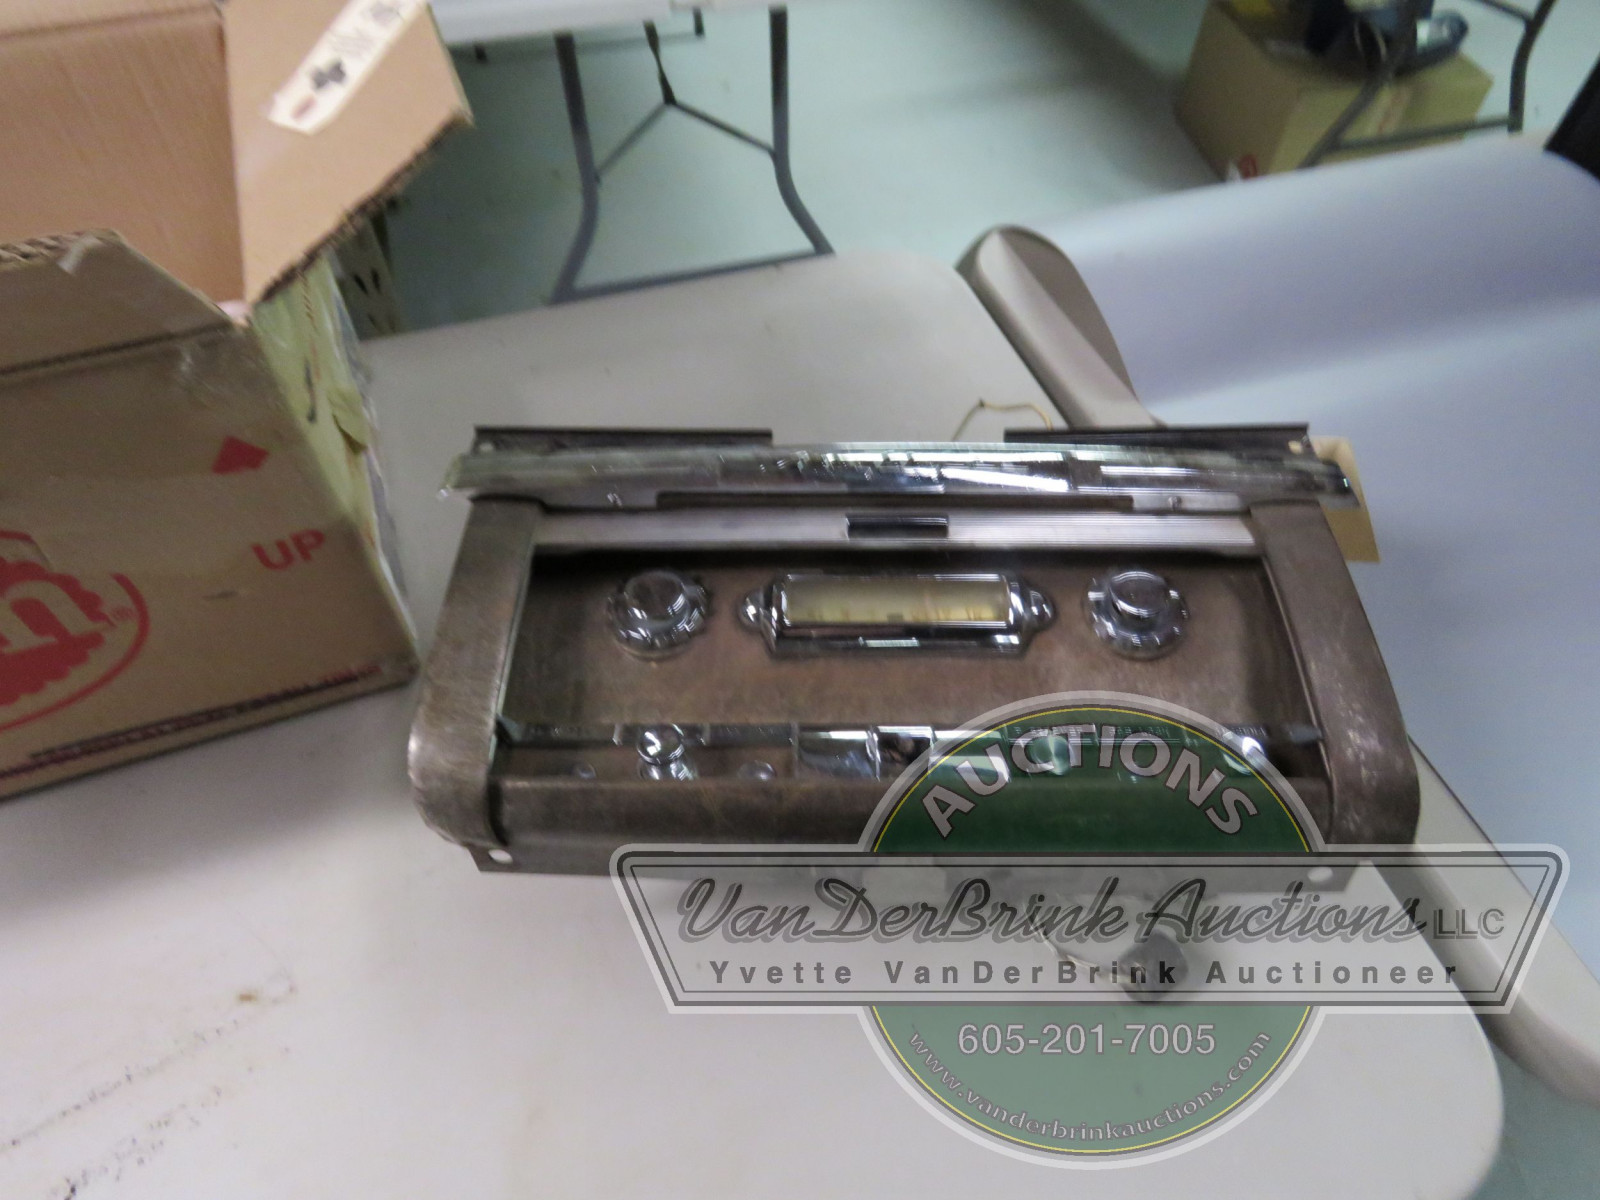 RARE NASH GLOVE BOX WITH HIDEAWAY RADIO - Image 4